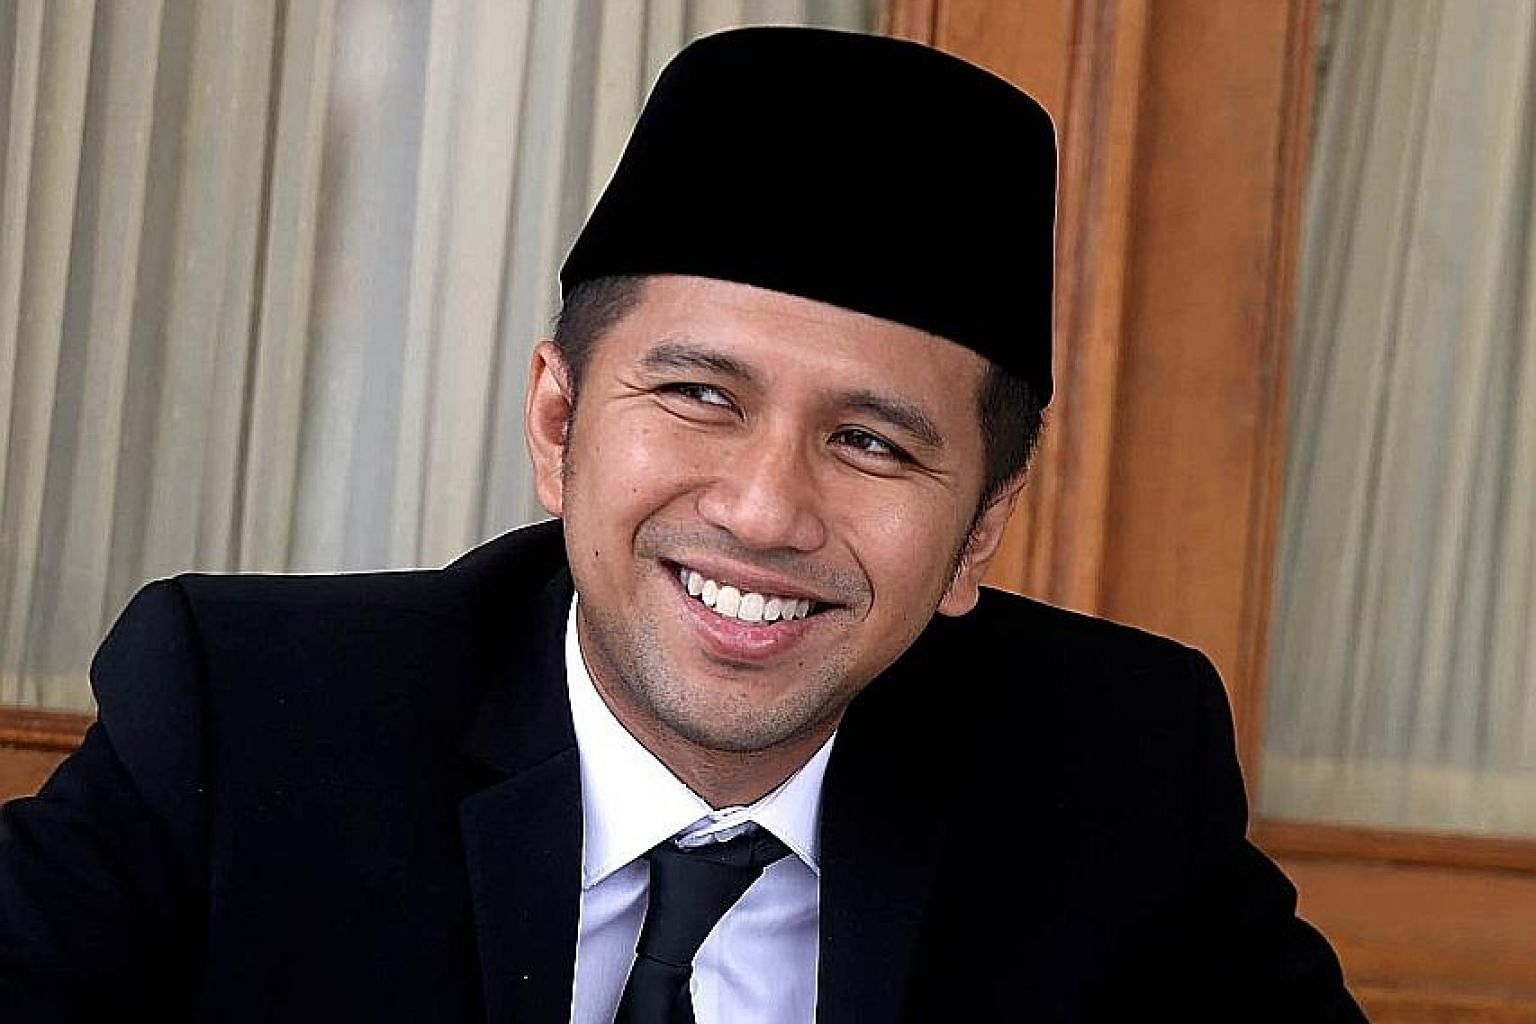 """East Java deputy governor Emil Dardak says the curiosity shown by young Indonesians about local politics in recent years is """"a good sign""""."""